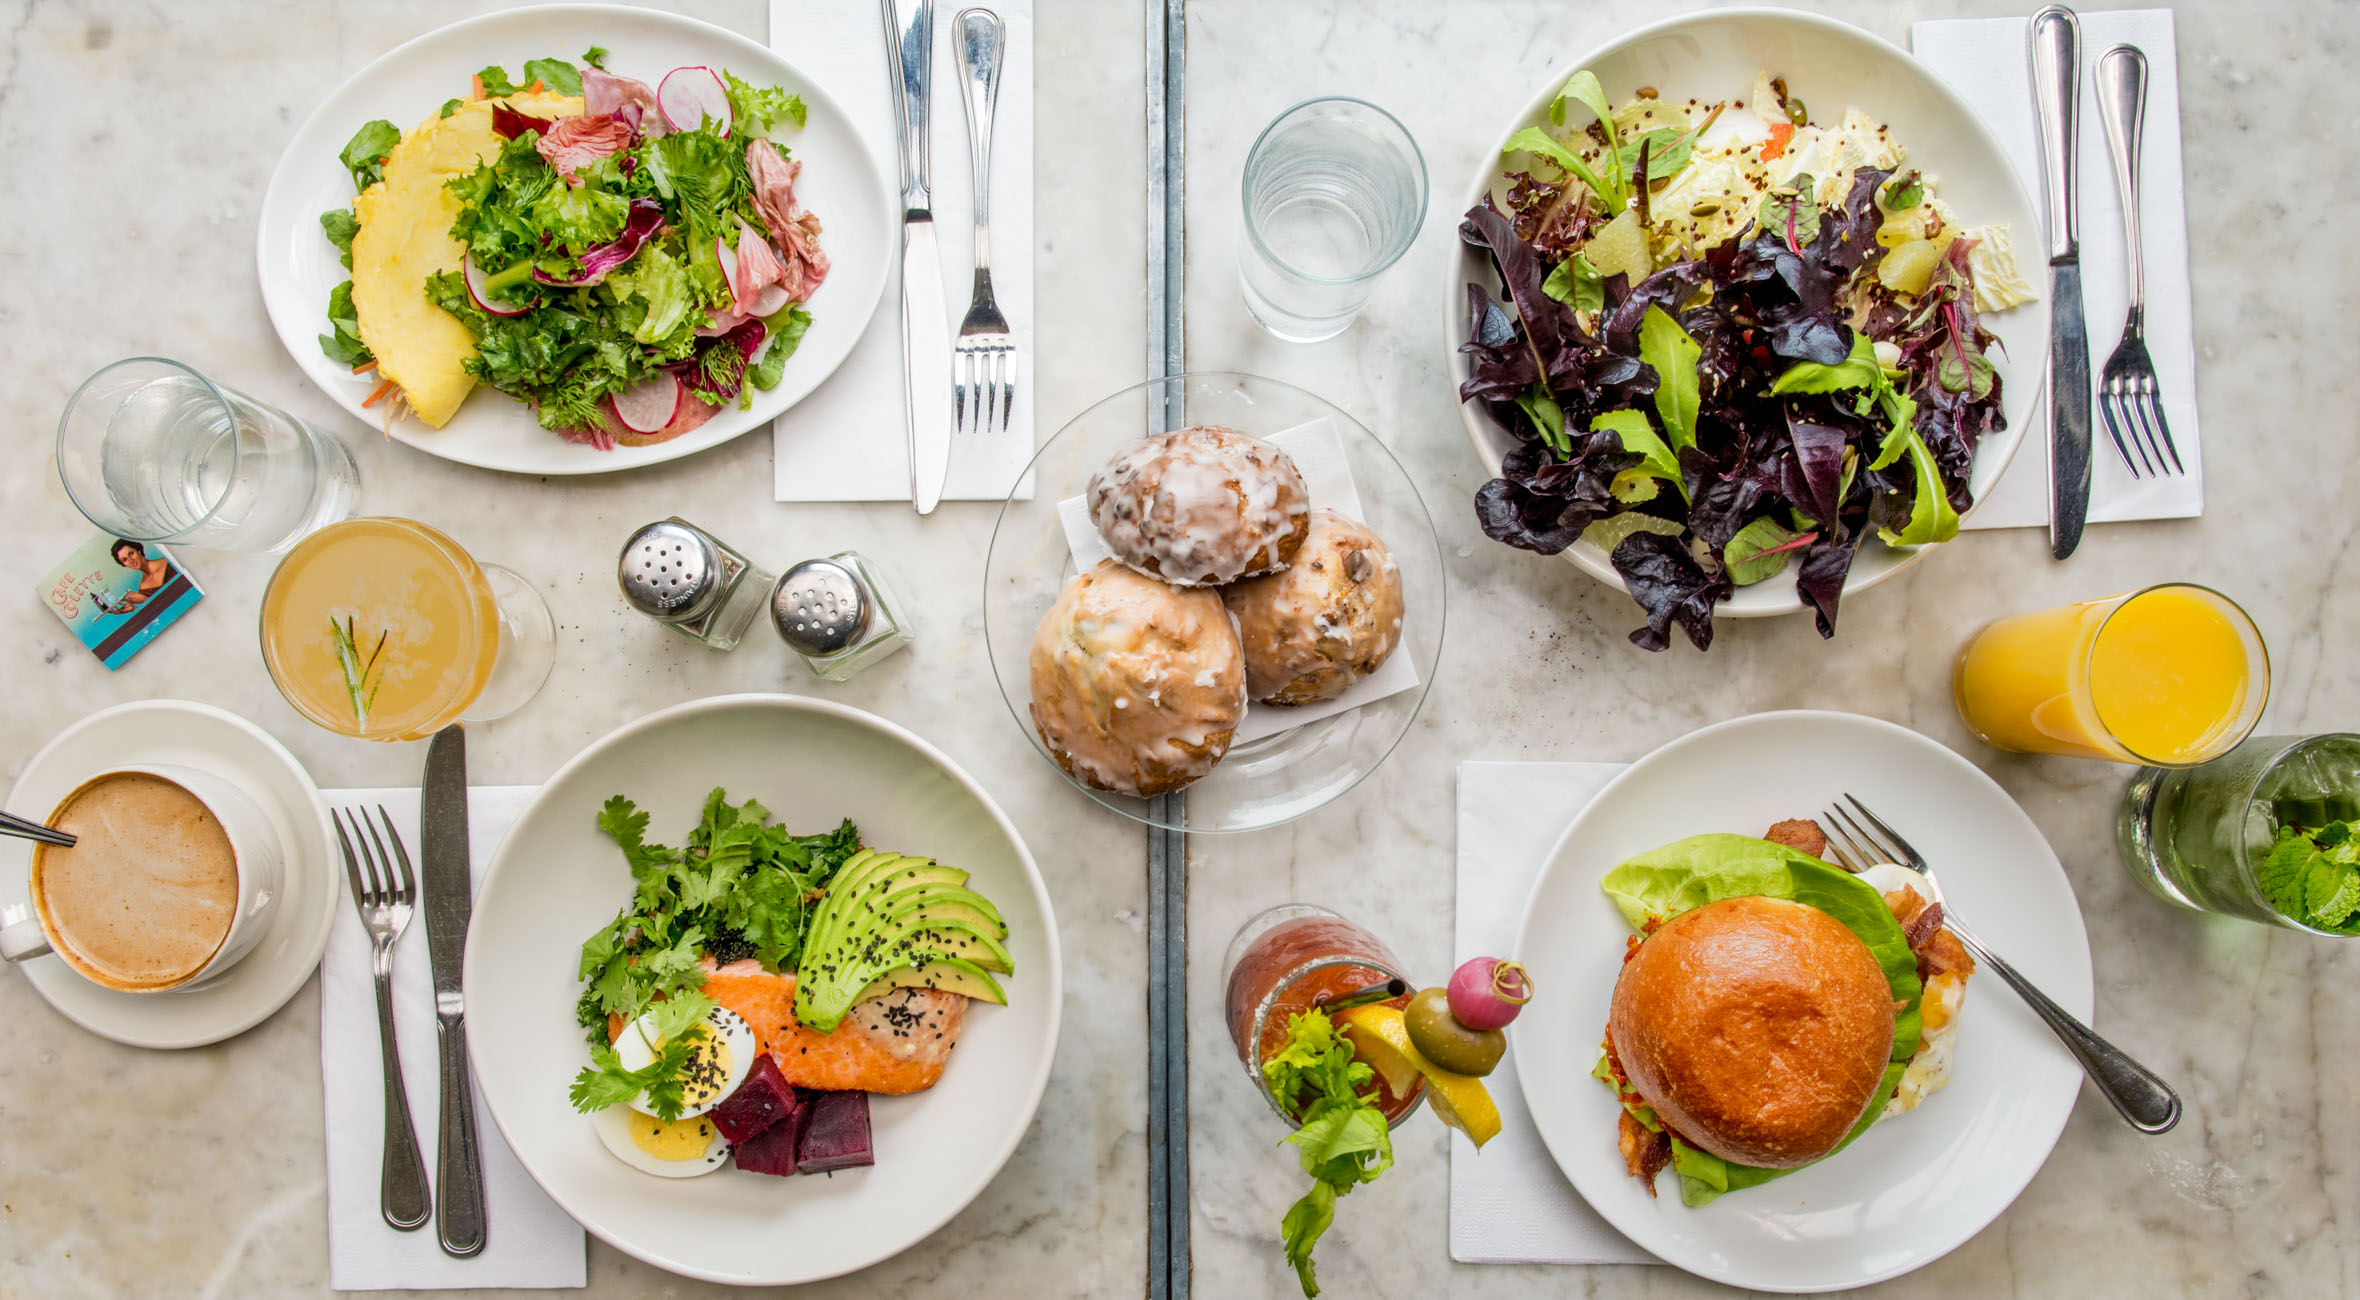 $40 Towards Whatever You Like at Cafe Colette – Enjoy Everything from Breakfast to Brunch, Dinner and Cocktails